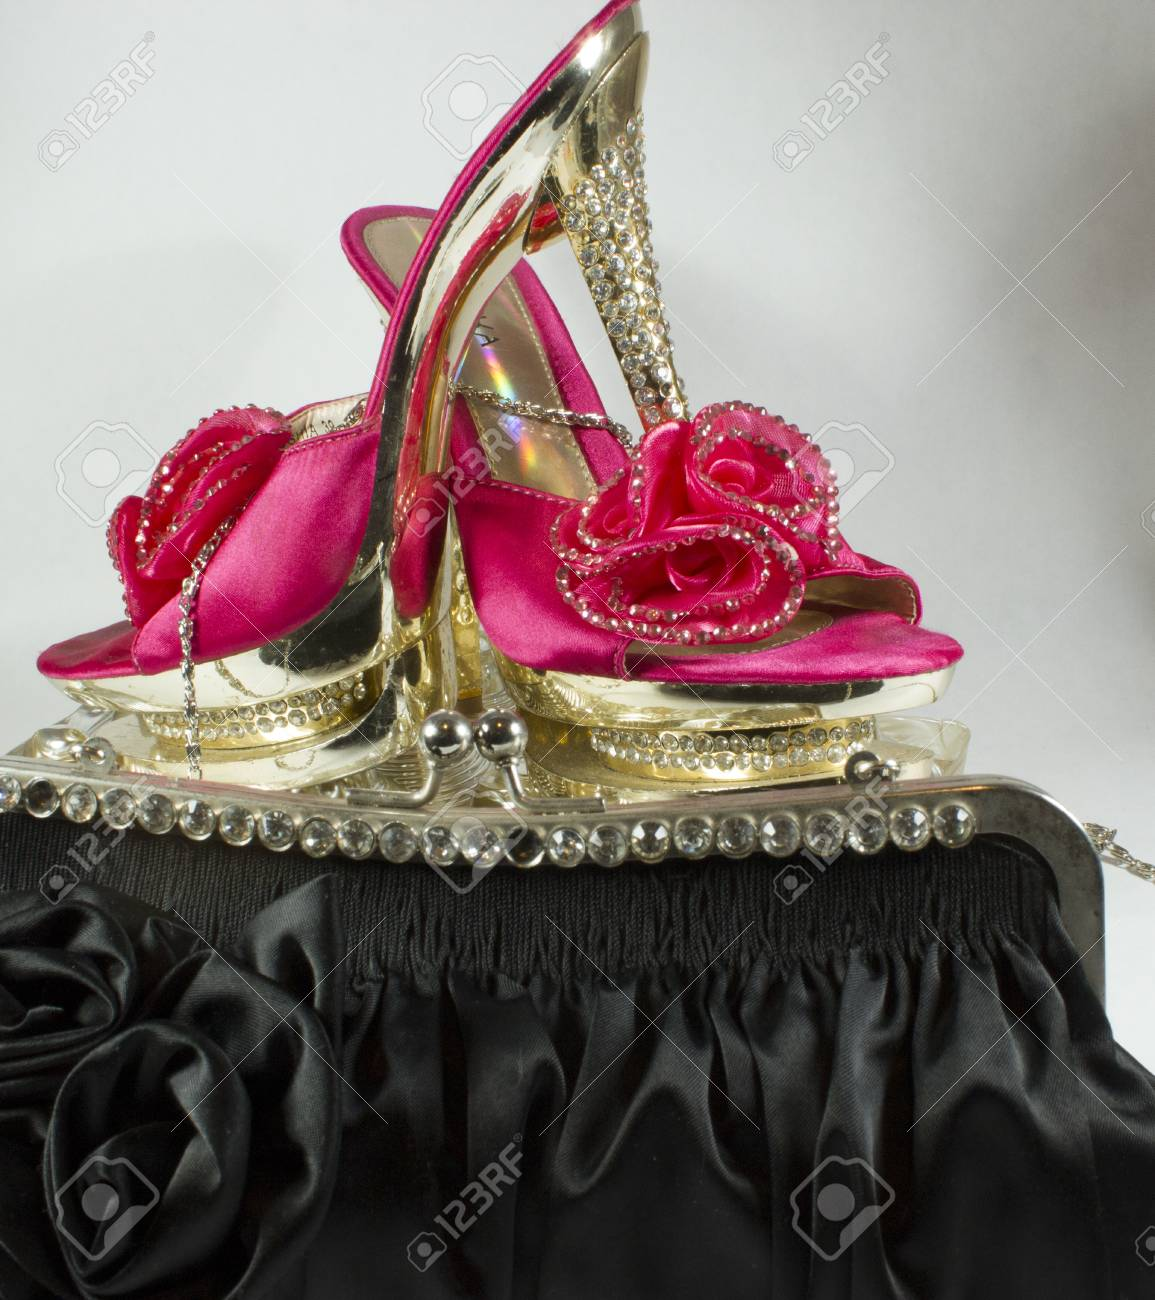 Intense Pink Shoes With Heels Studded With Glitter Enriched Stock